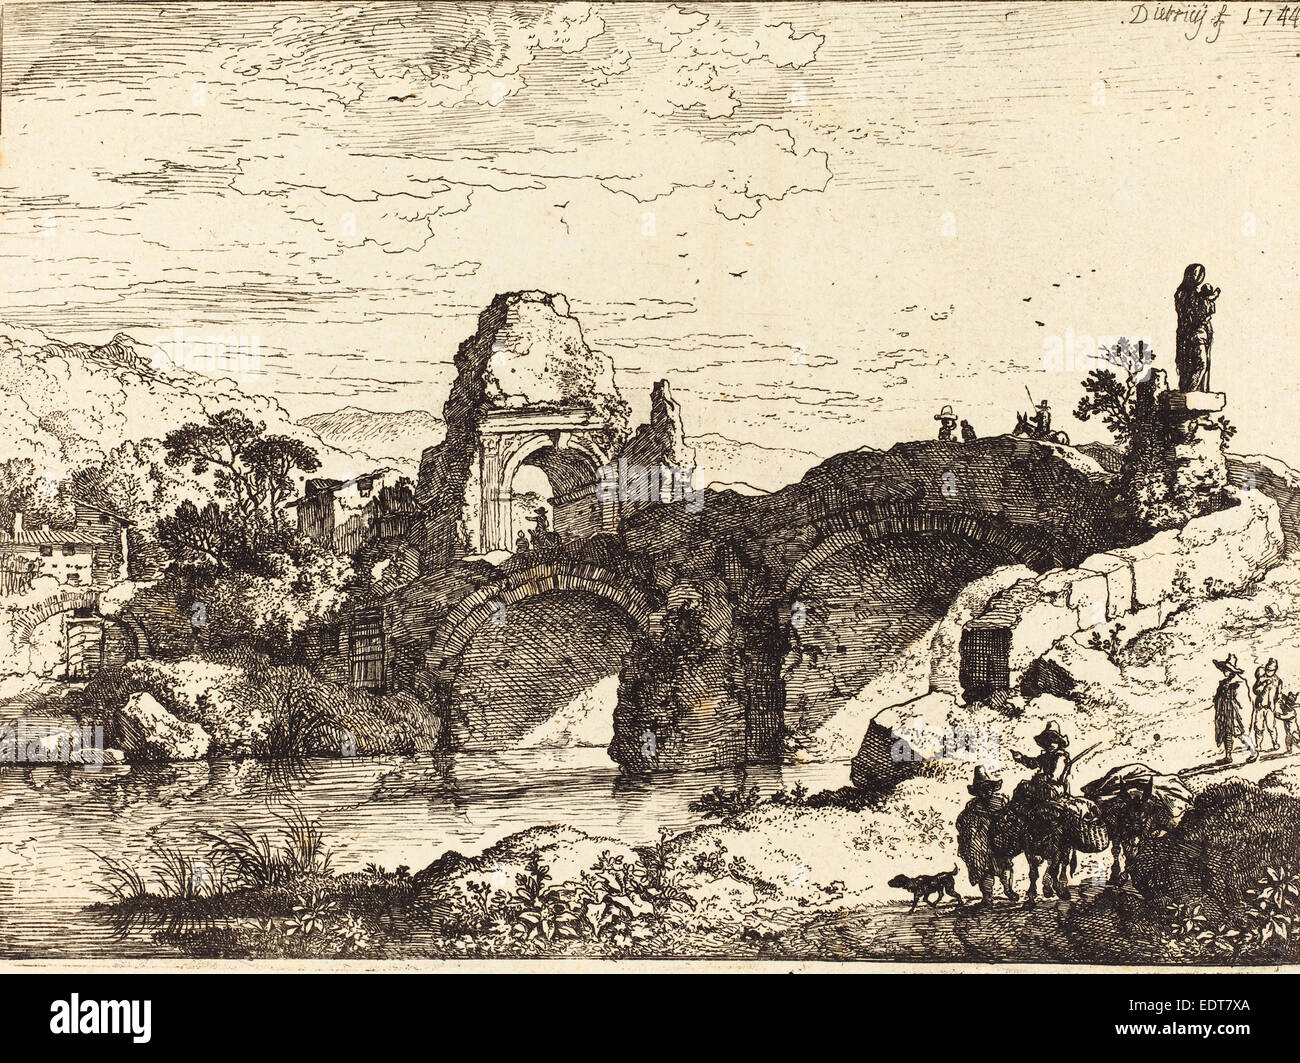 Christian Wilhelm Ernst Dietrich (German, 1712 - 1774), Landscape with a  Bridge and Ruined Tower, 1744, etching